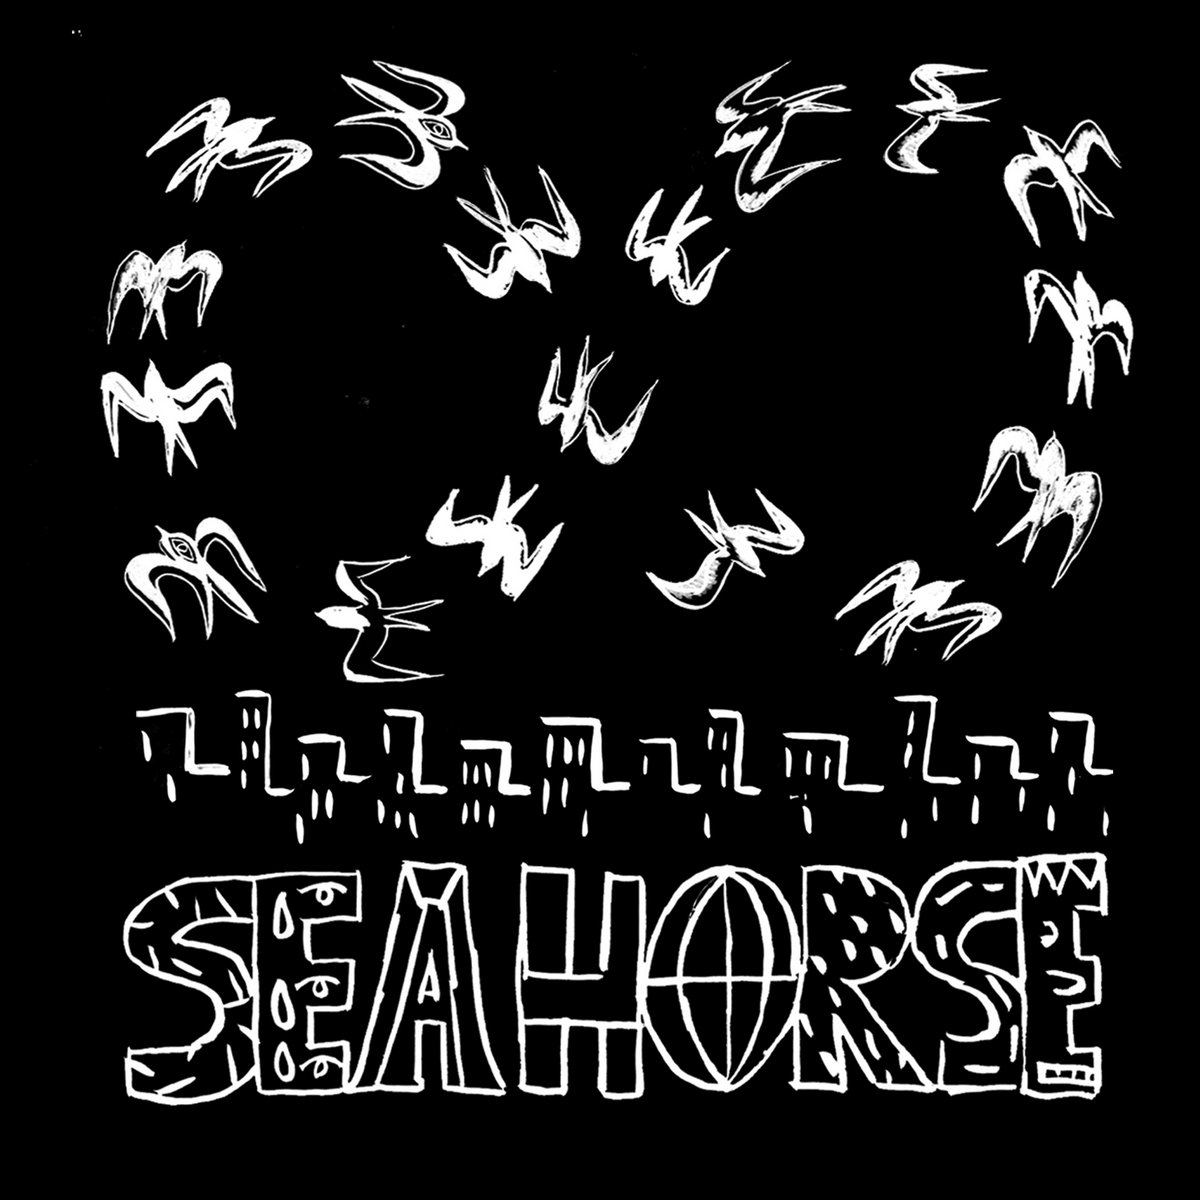 Seahorse feat. King Krule-Horsey-Credits-Ross-Fortune-Producer-Mixer-Producer-Mixer-Engineer-416x416.jpeg